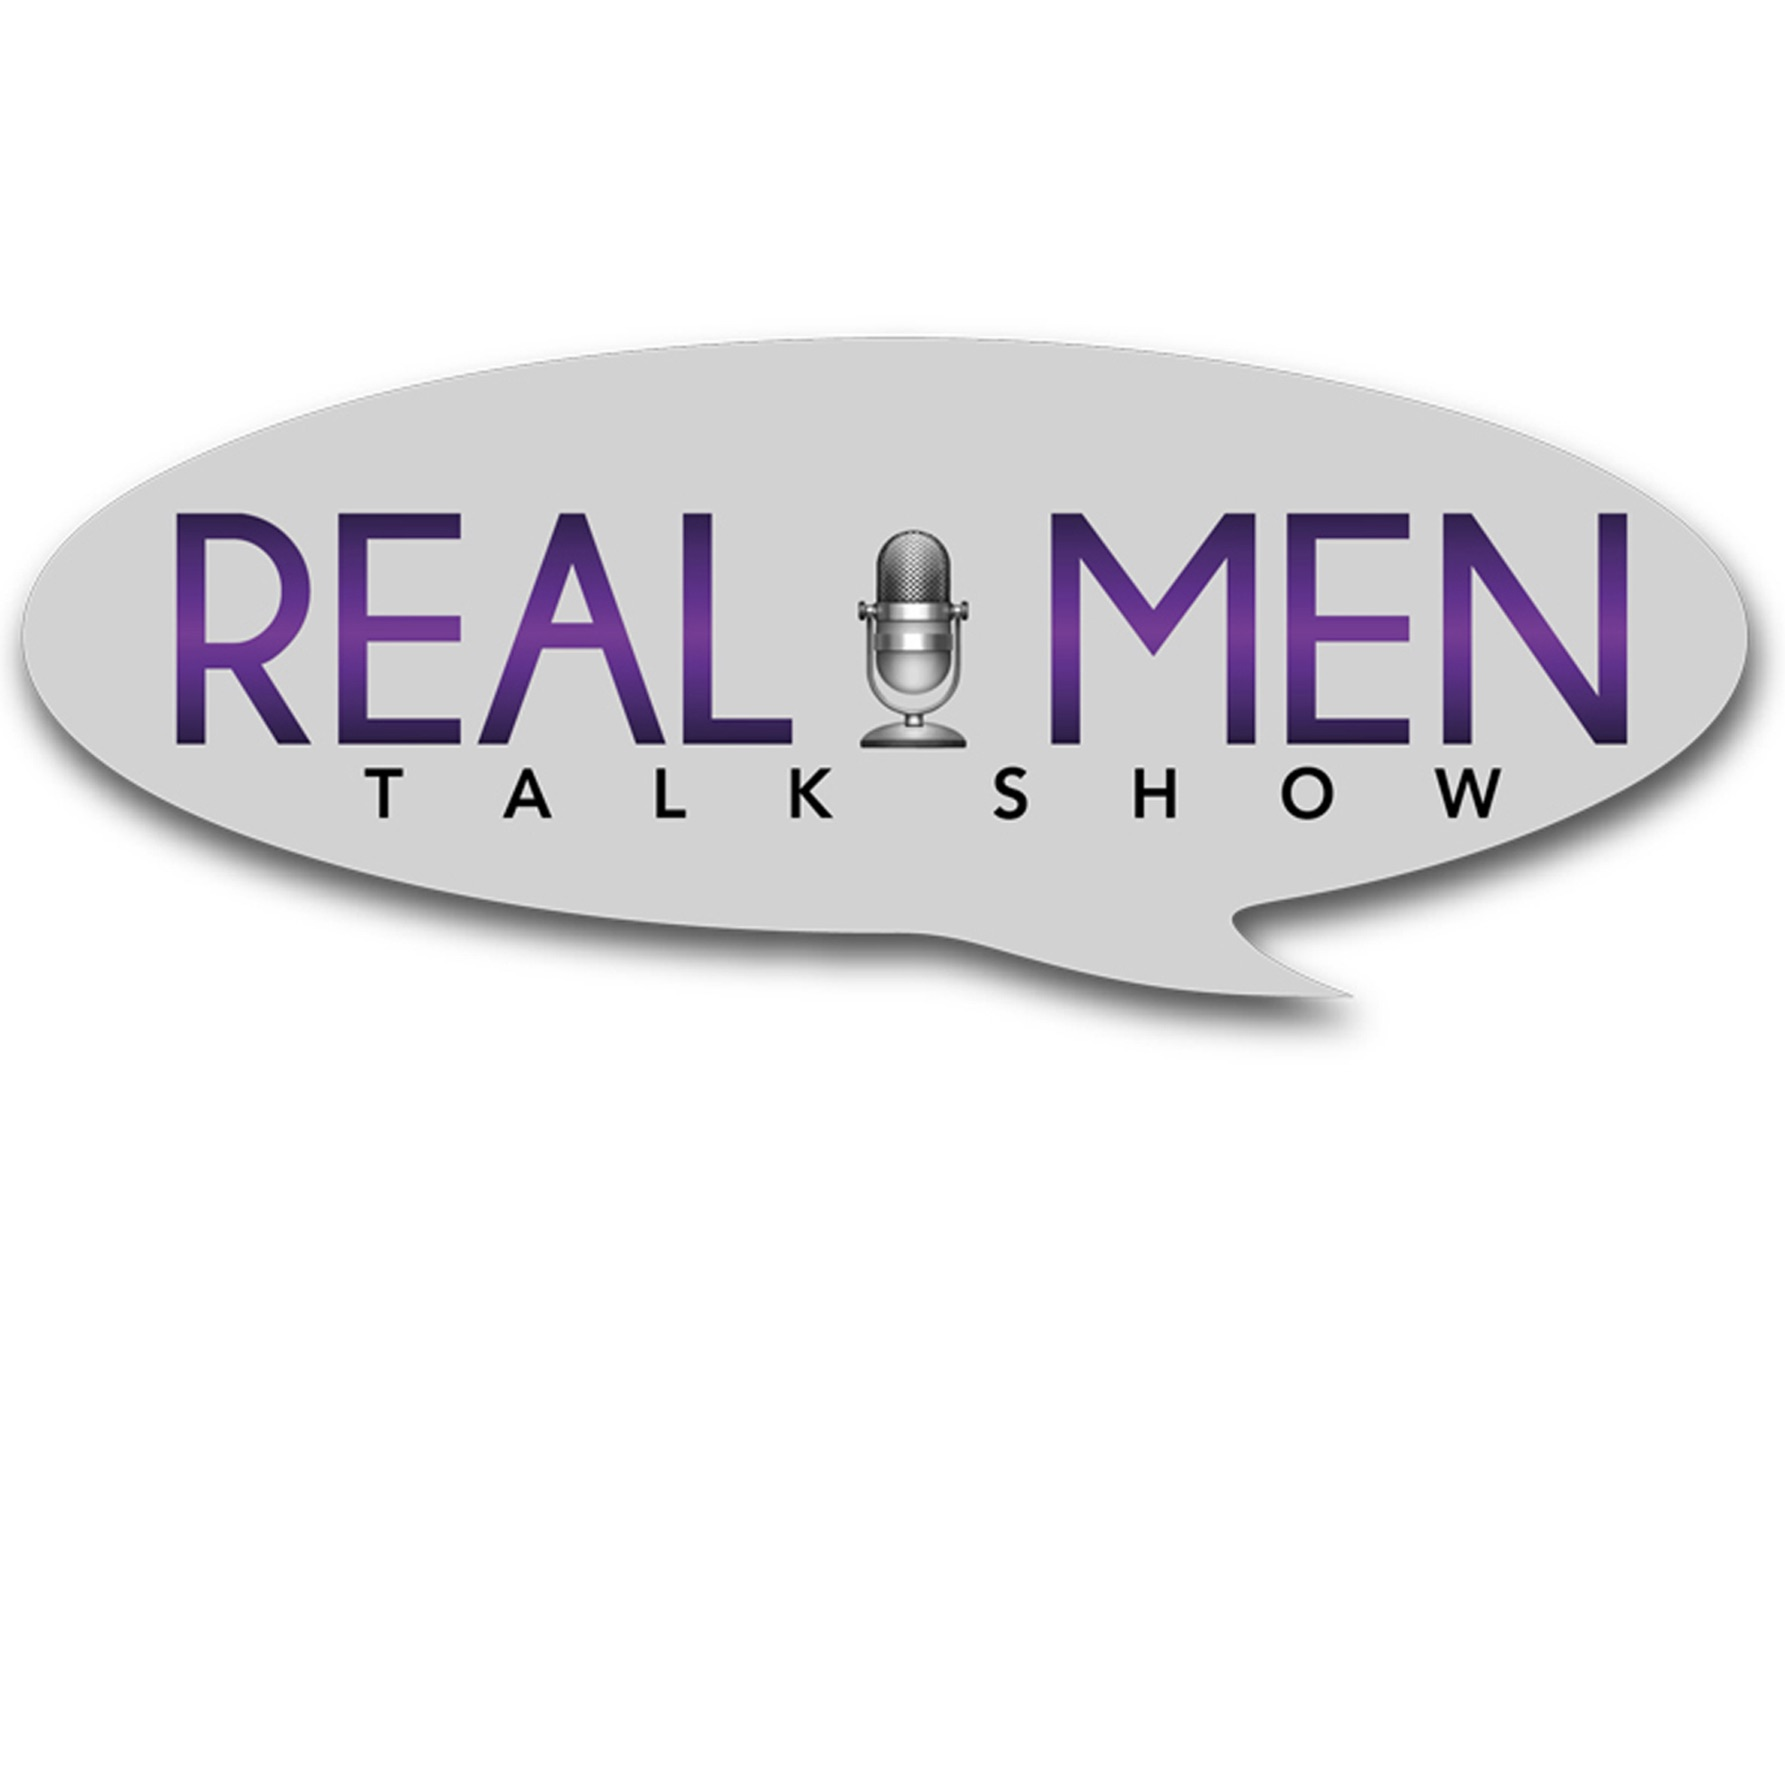 Real Men Talk Show